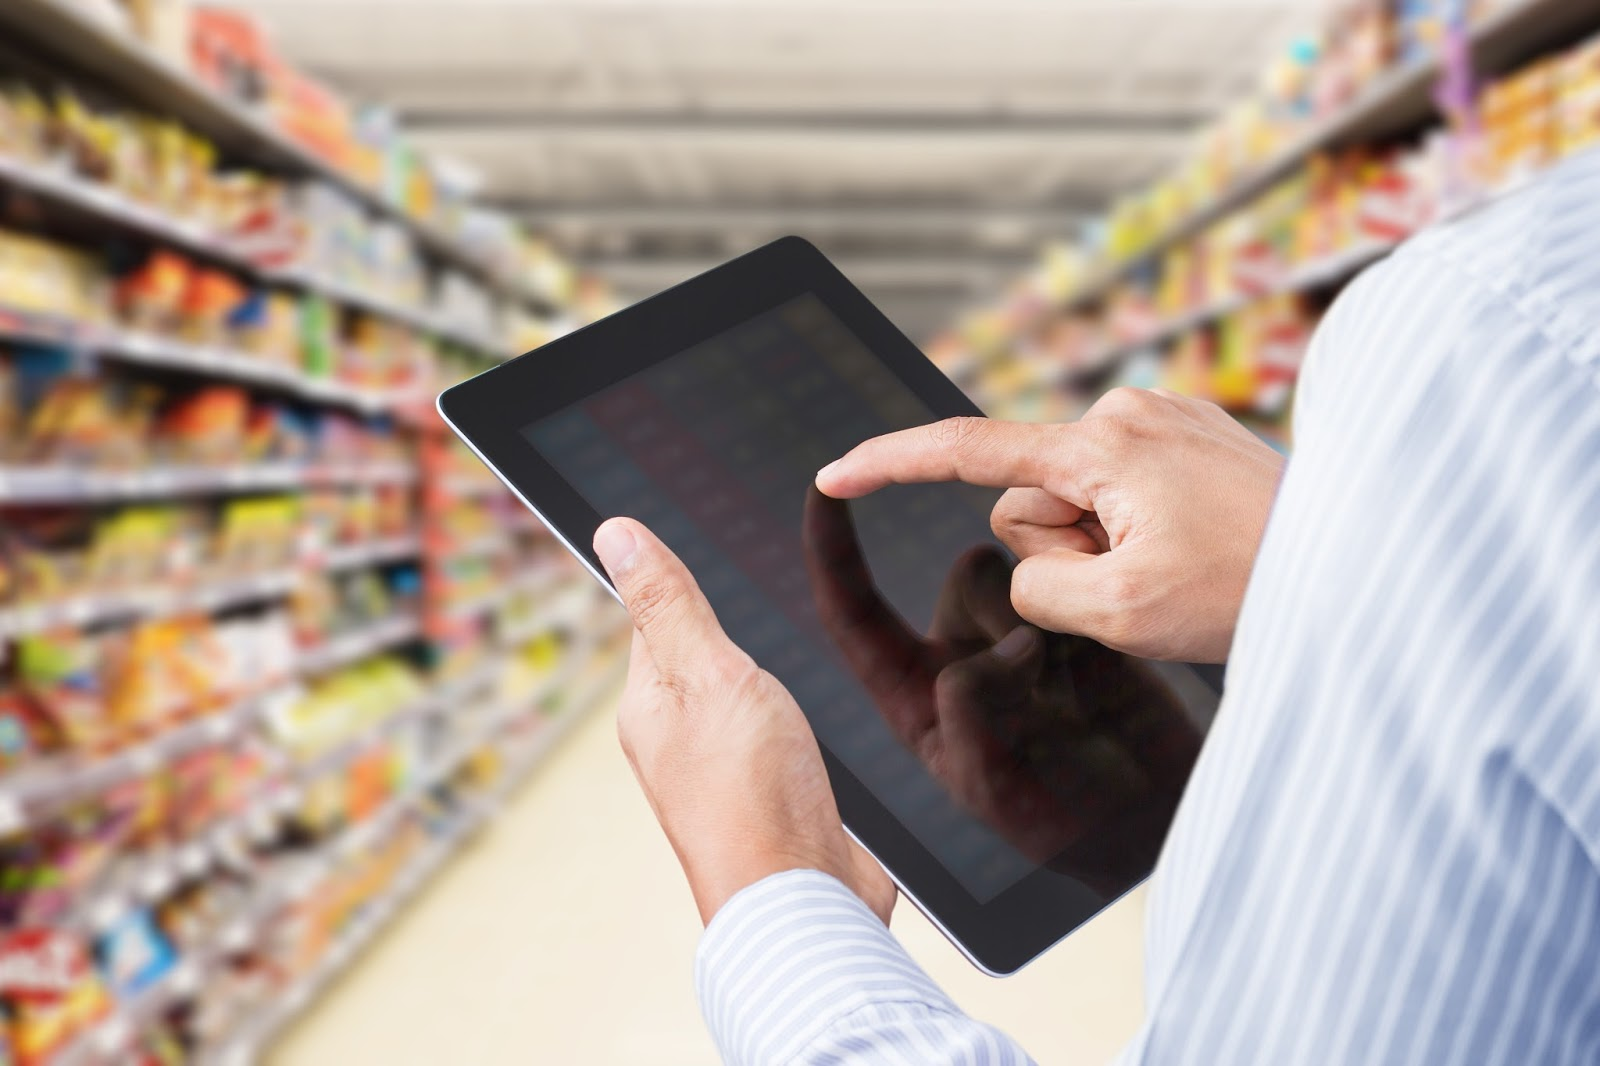 Retail Audit Application is the Key to Planogram Compliance